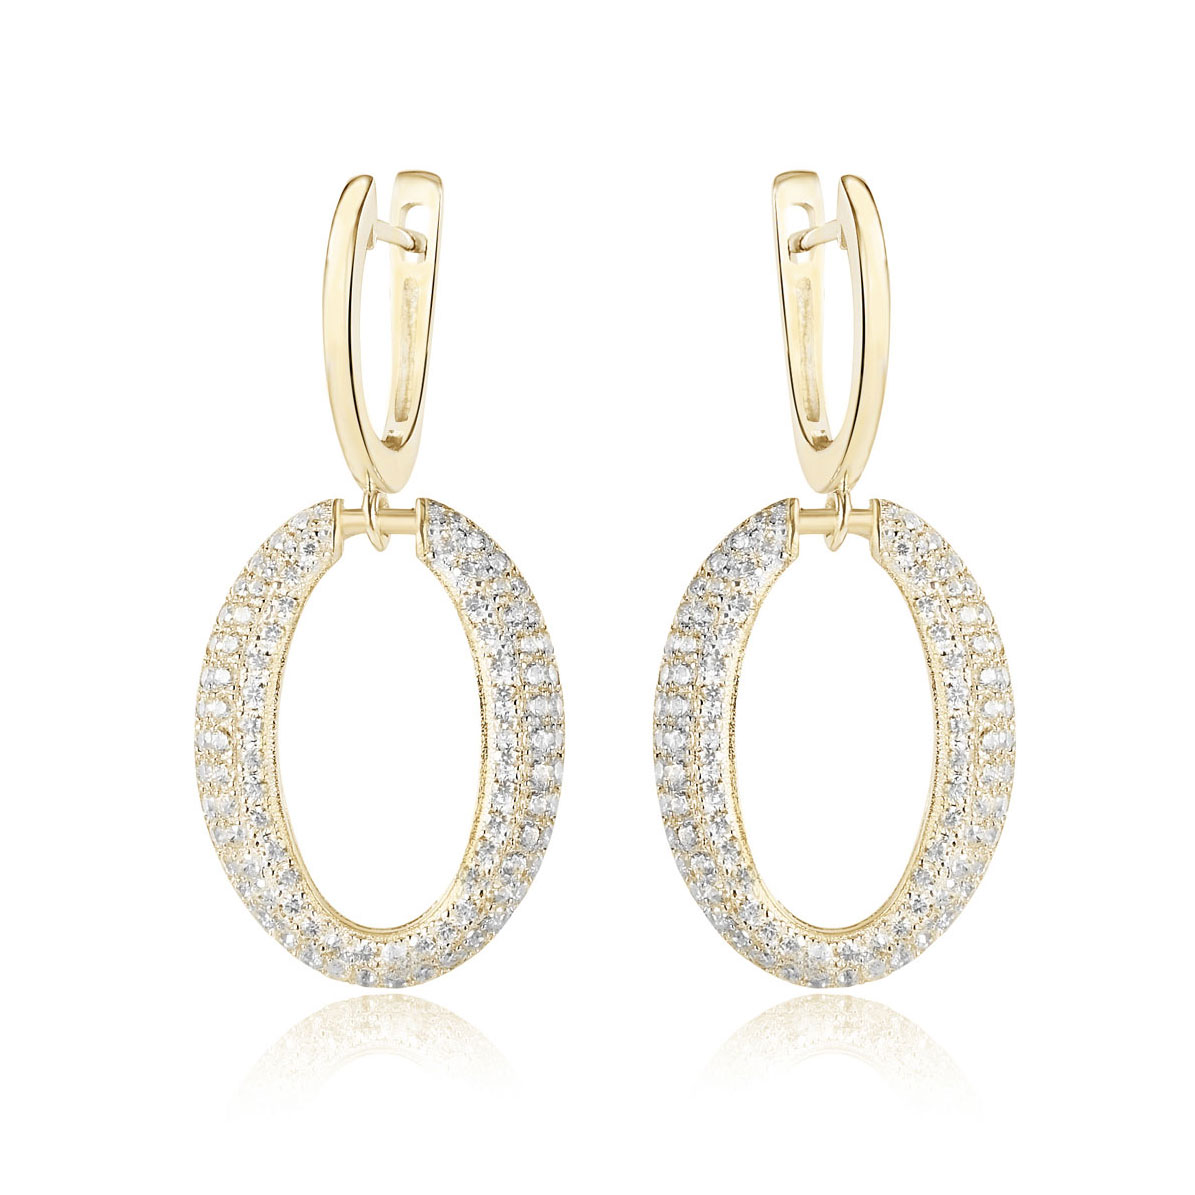 Cashs Ireland, Crystal and 18k Gold Cocktail Pierced Earrings, Pair